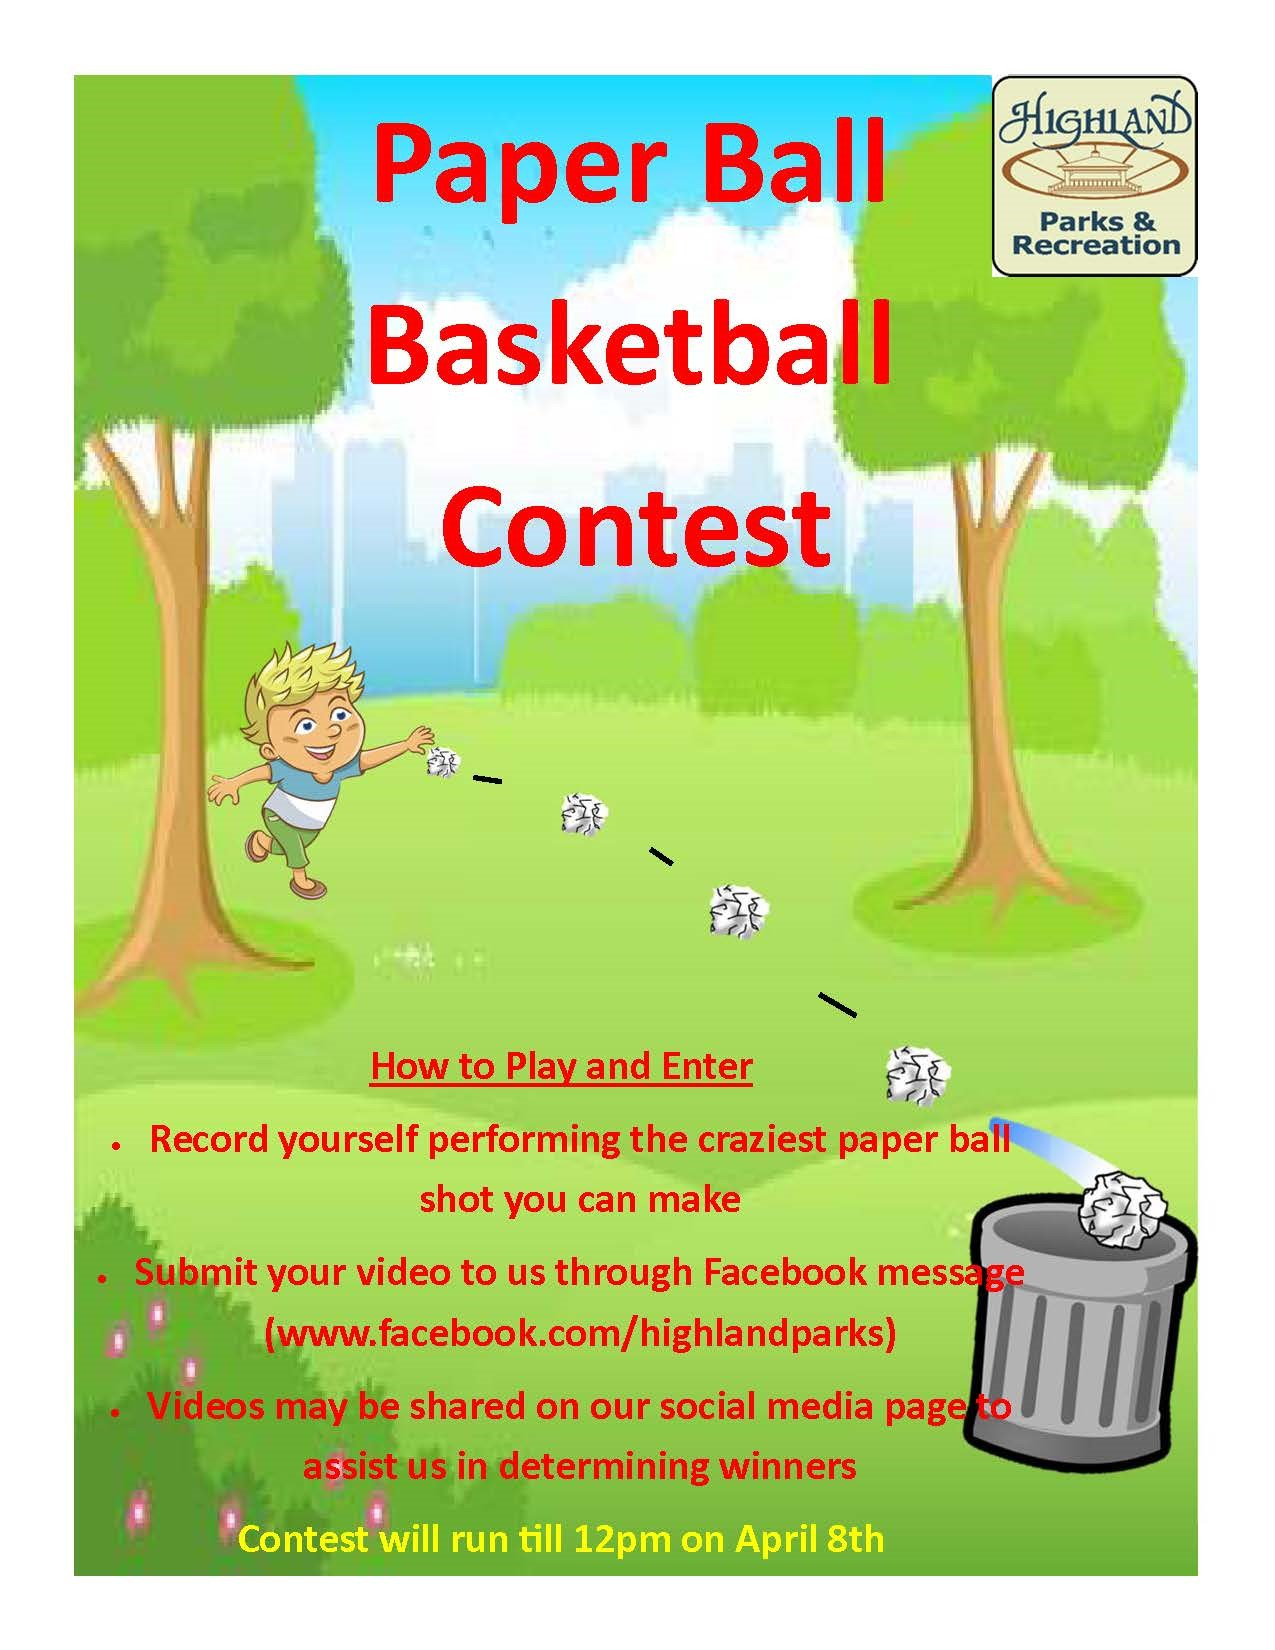 highland indiana parks online basketball game for kids during pandemic